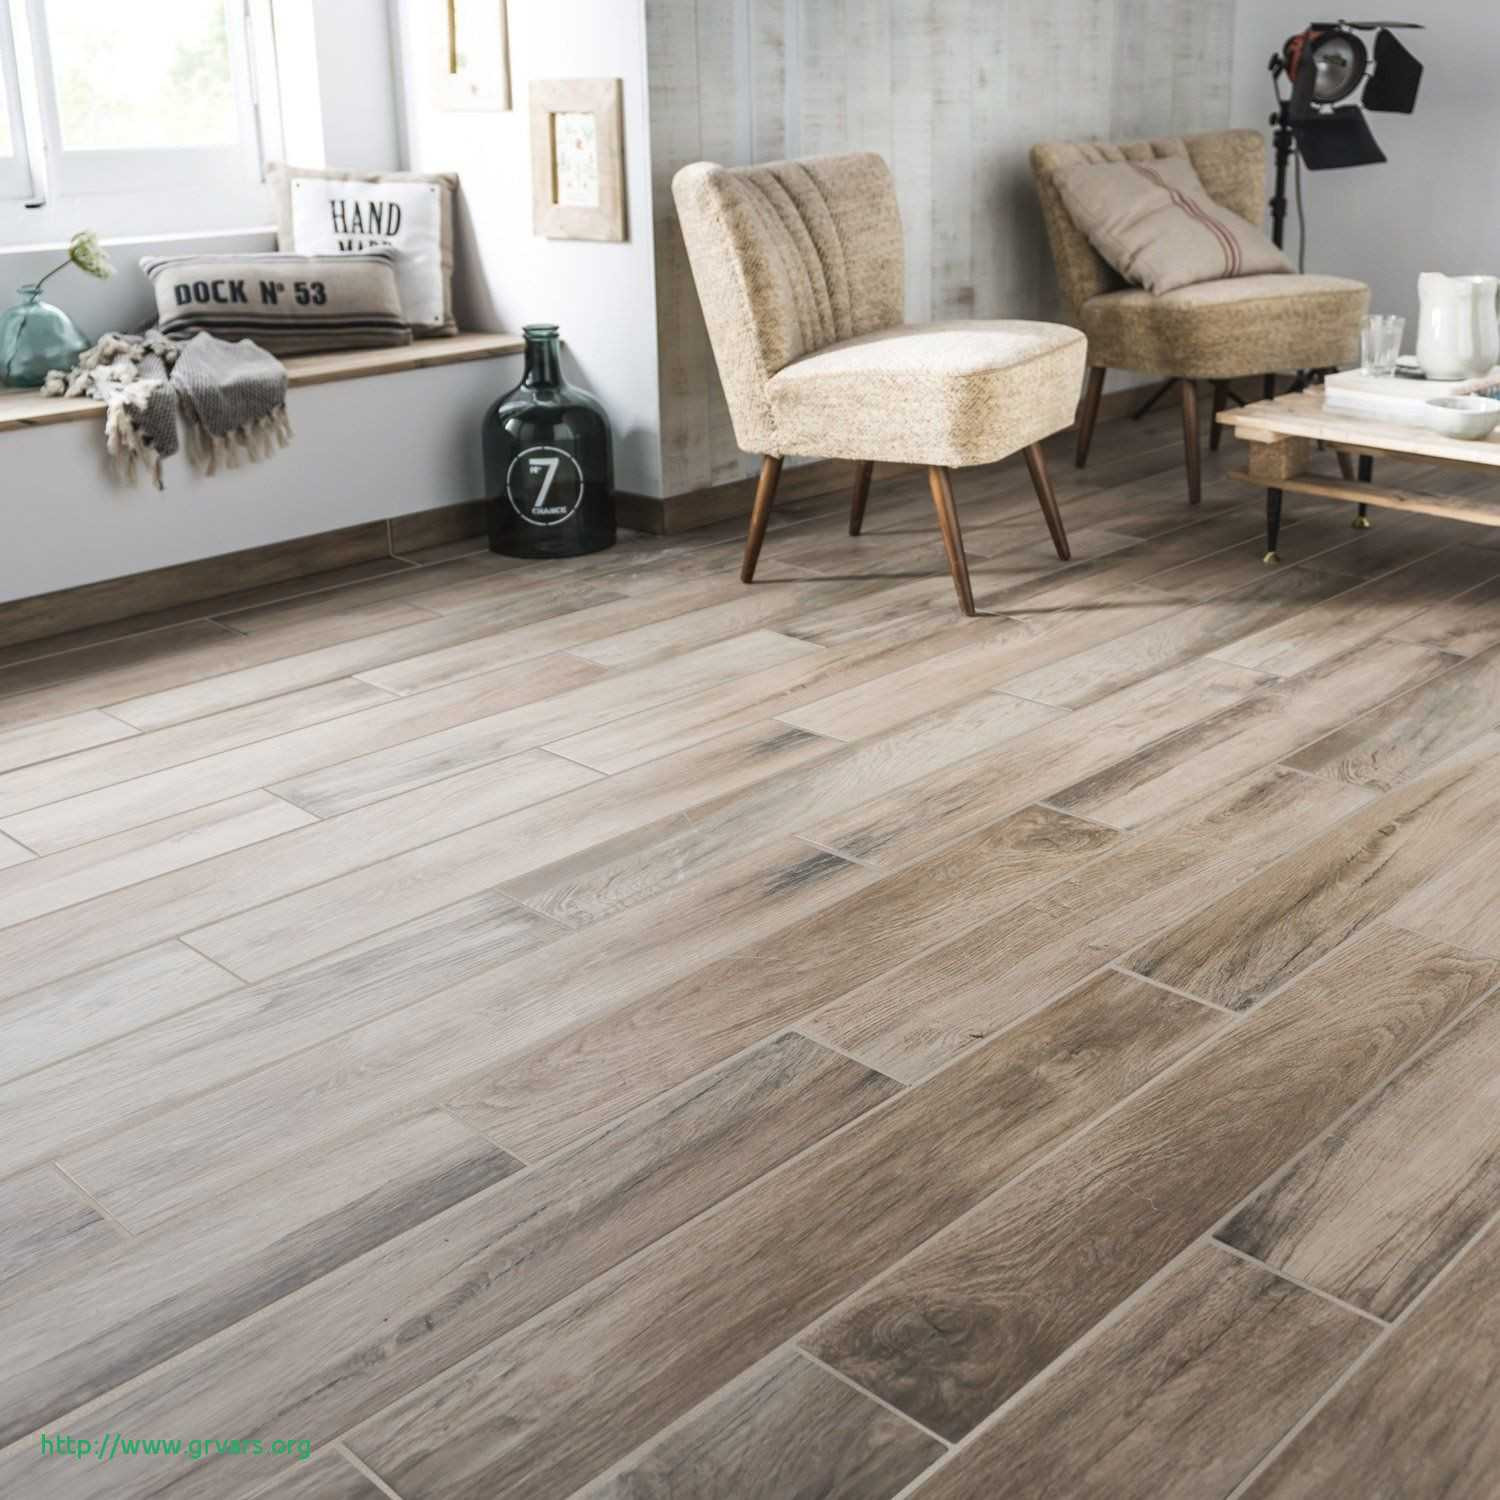 hardwood flooring salem oregon of hardwood floor sanders 20 nouveau hazy hardwood floors dahuacctvth inside hardwood floor sanders 20 nouveau hazy hardwood floors